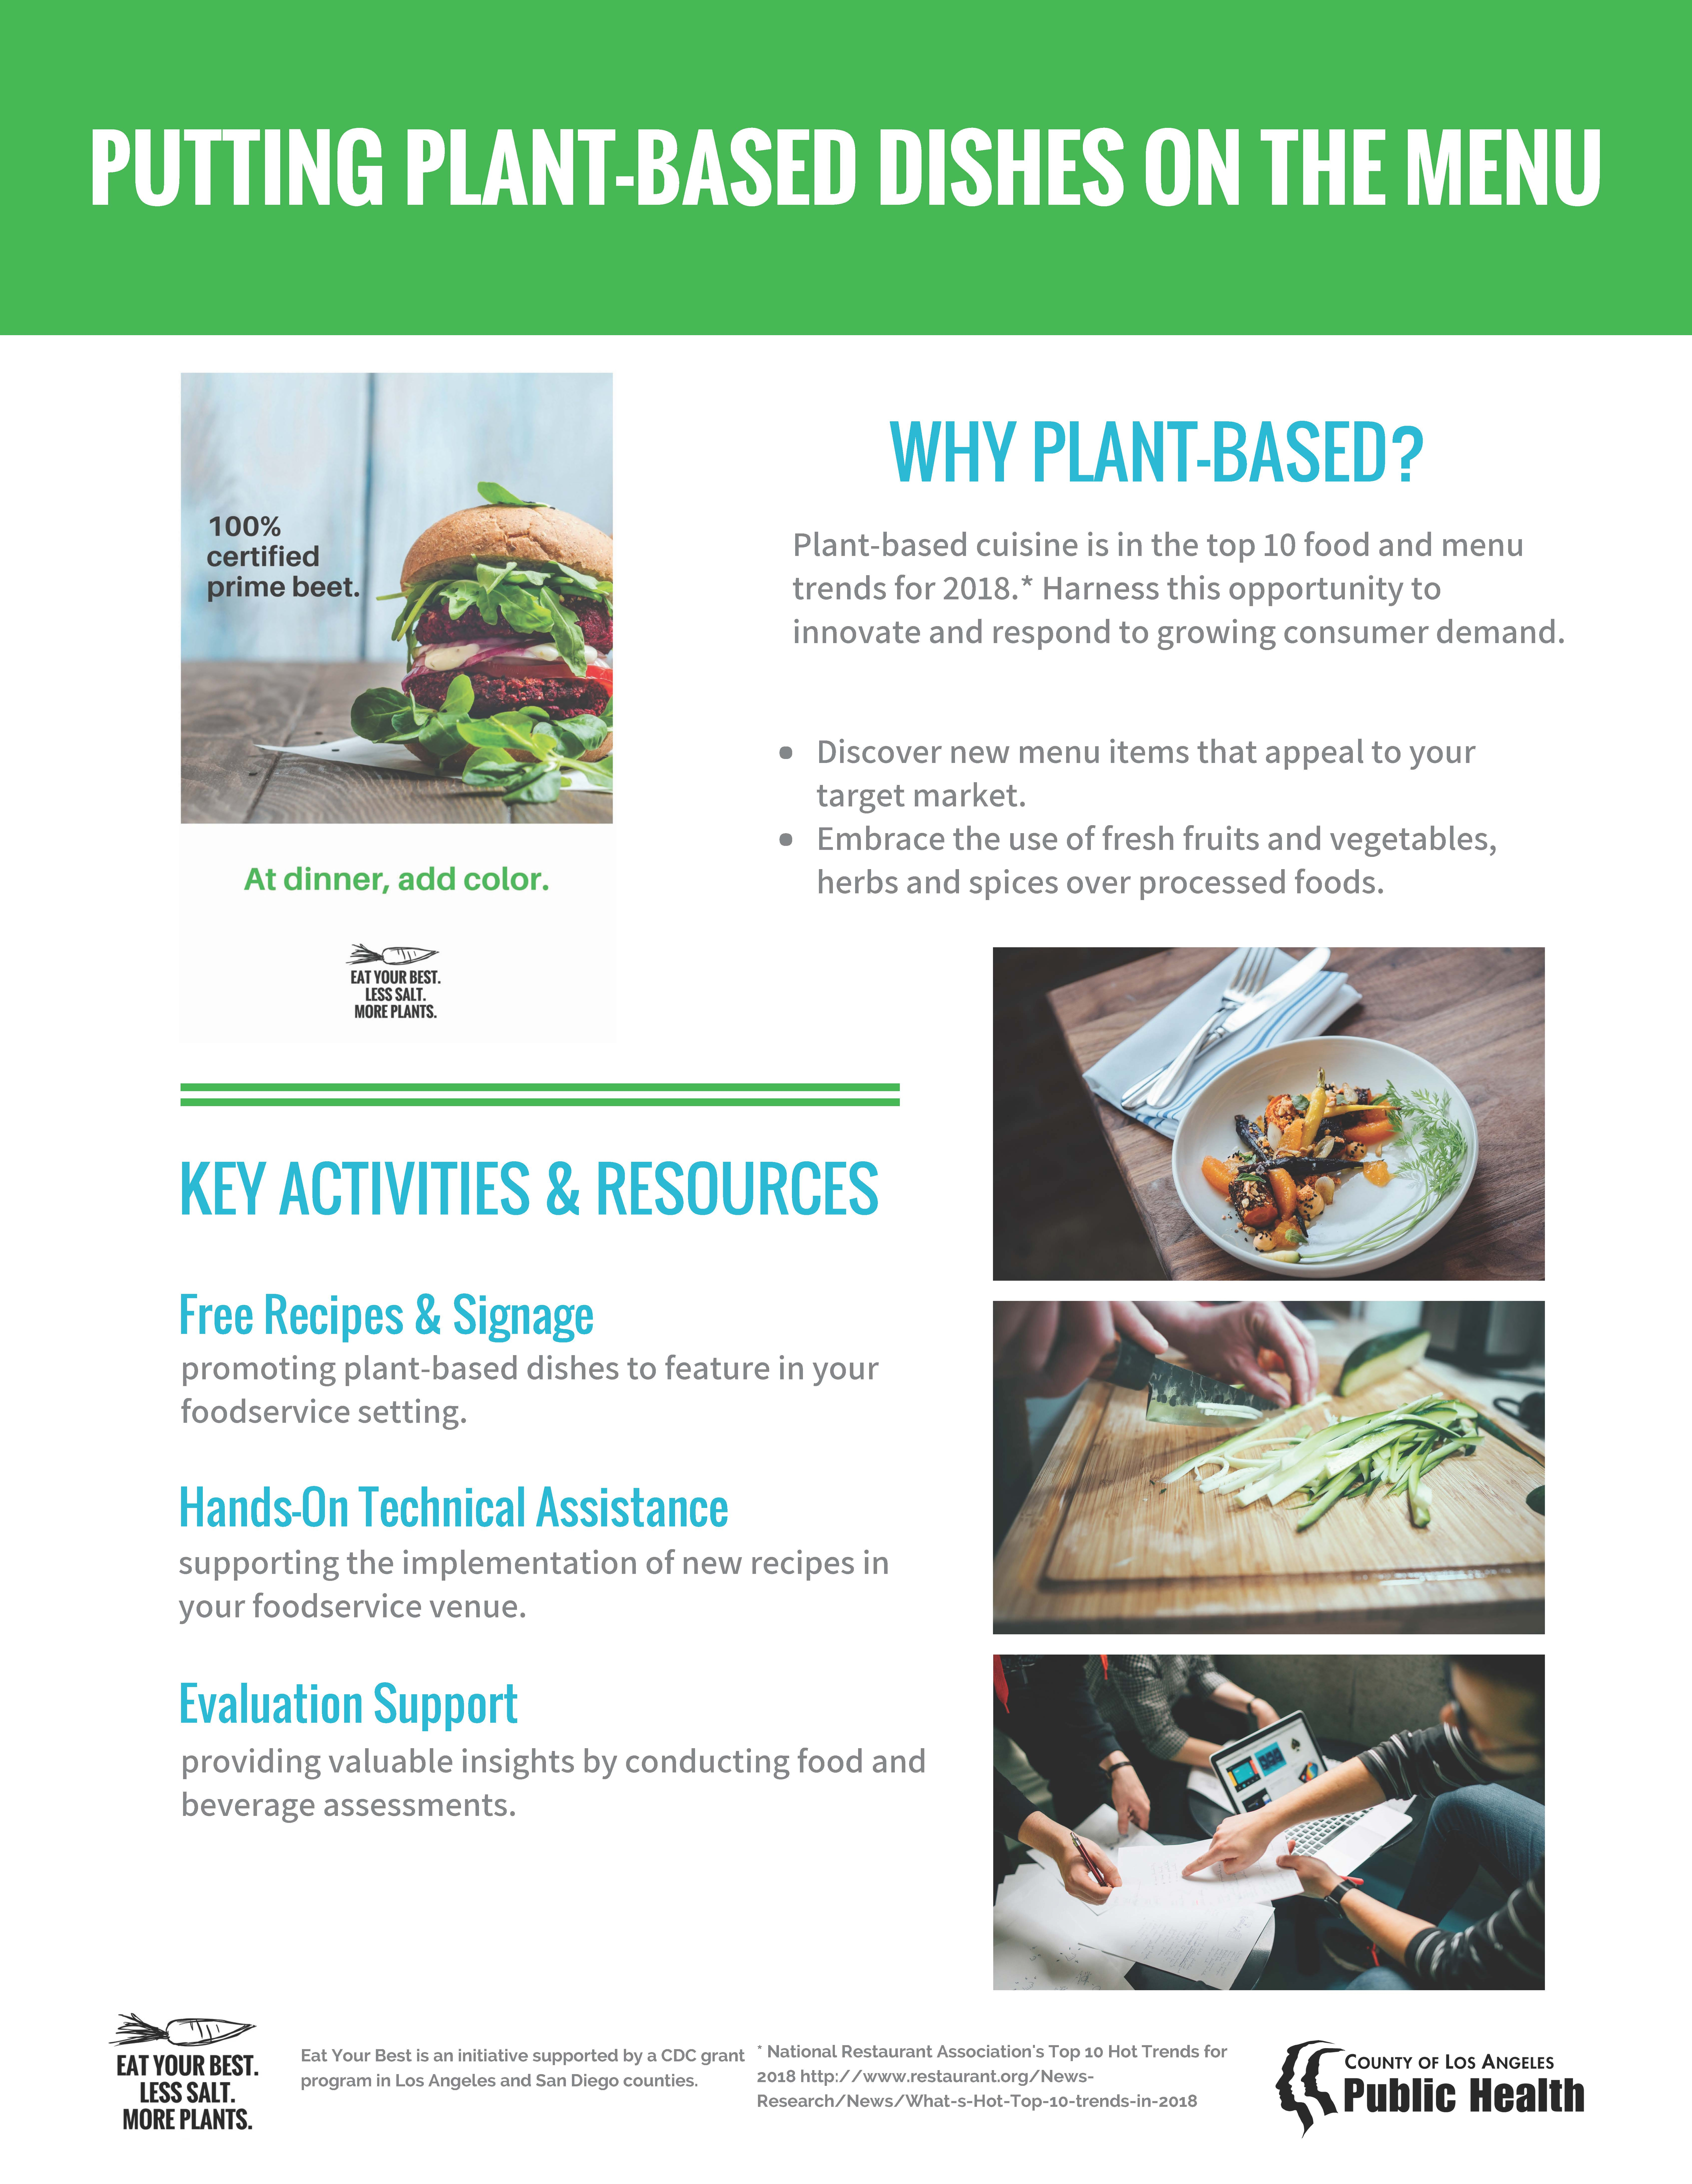 Info sheet titled Putting Plant-Based Dishes on the Menu